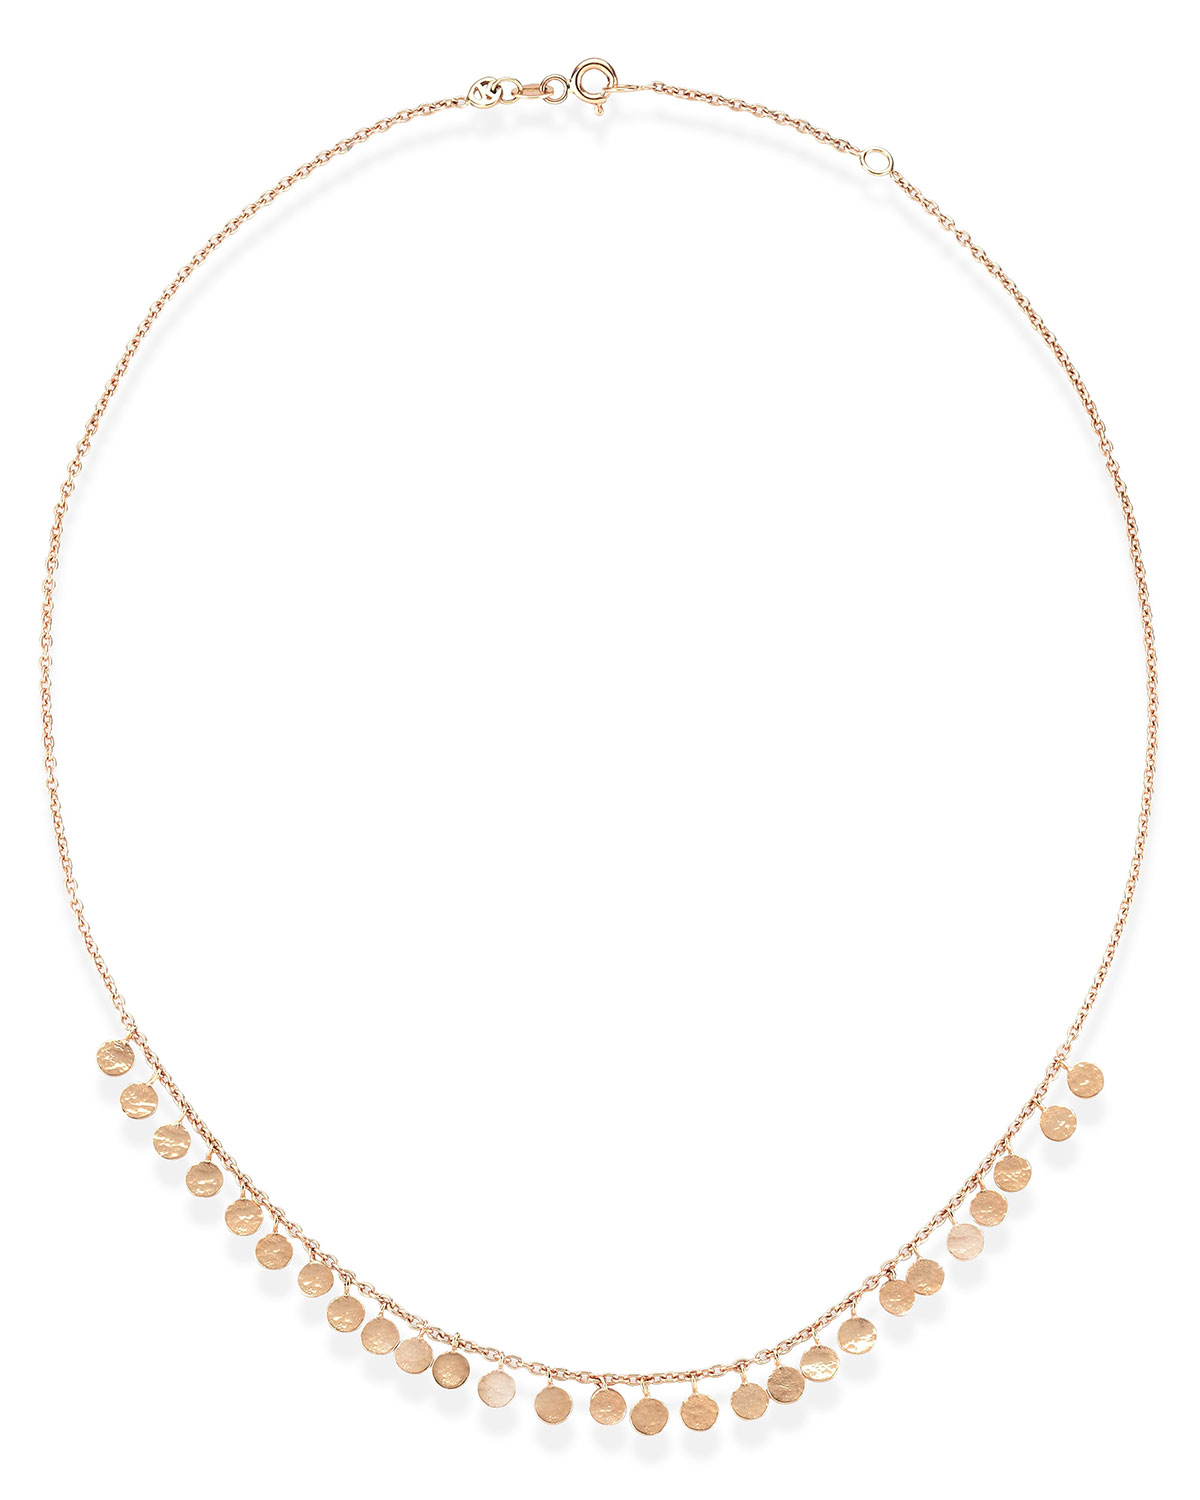 Kismet by Milka Seed Dangling Circle Necklace in 14K Rose Gold dNgAwa3